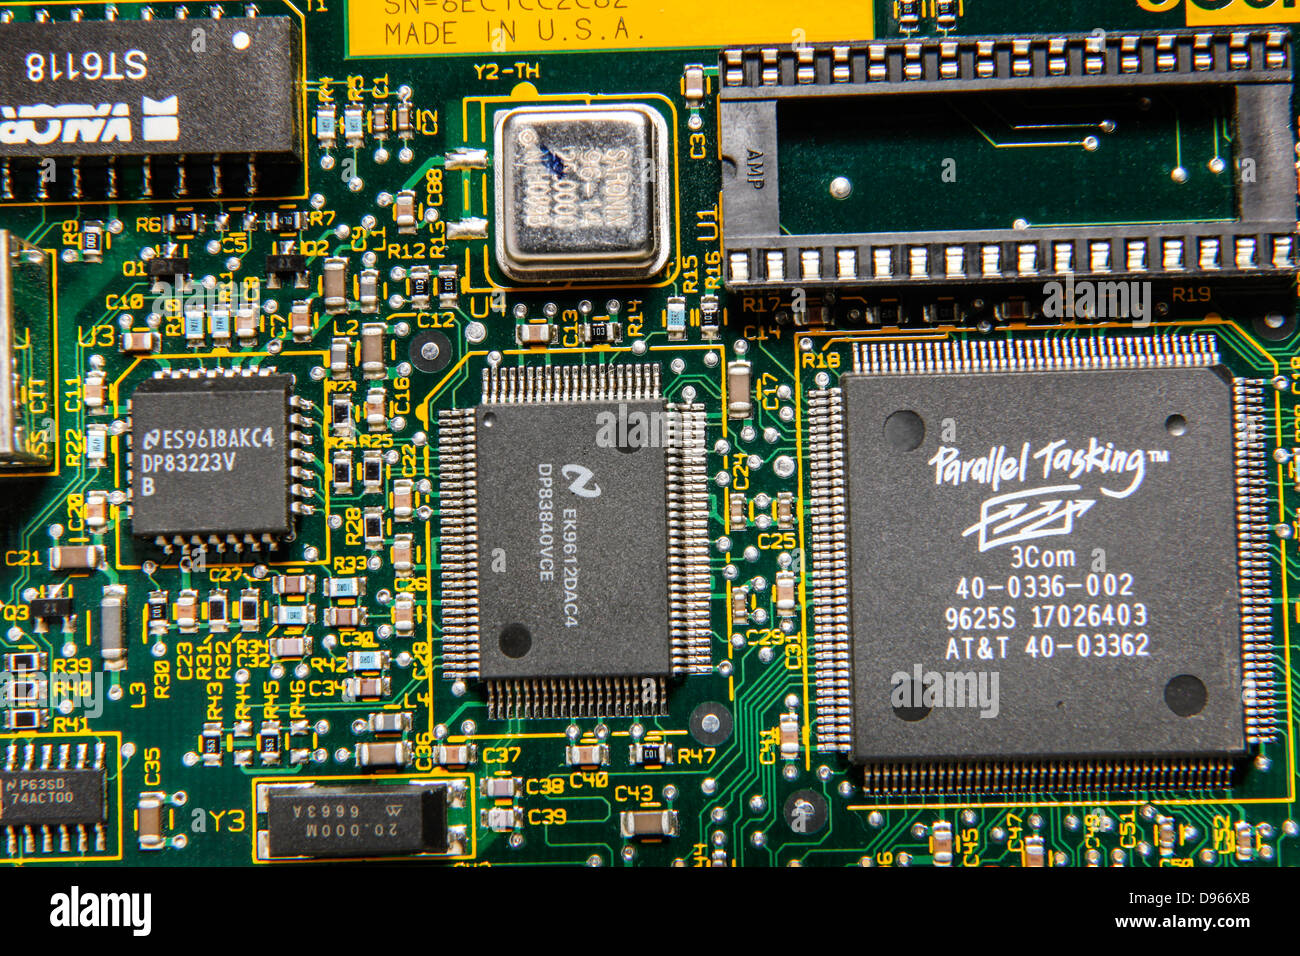 Basic Parts Of A Motherboard: Close-up Macro Photography Of A Parts And Motherboard And